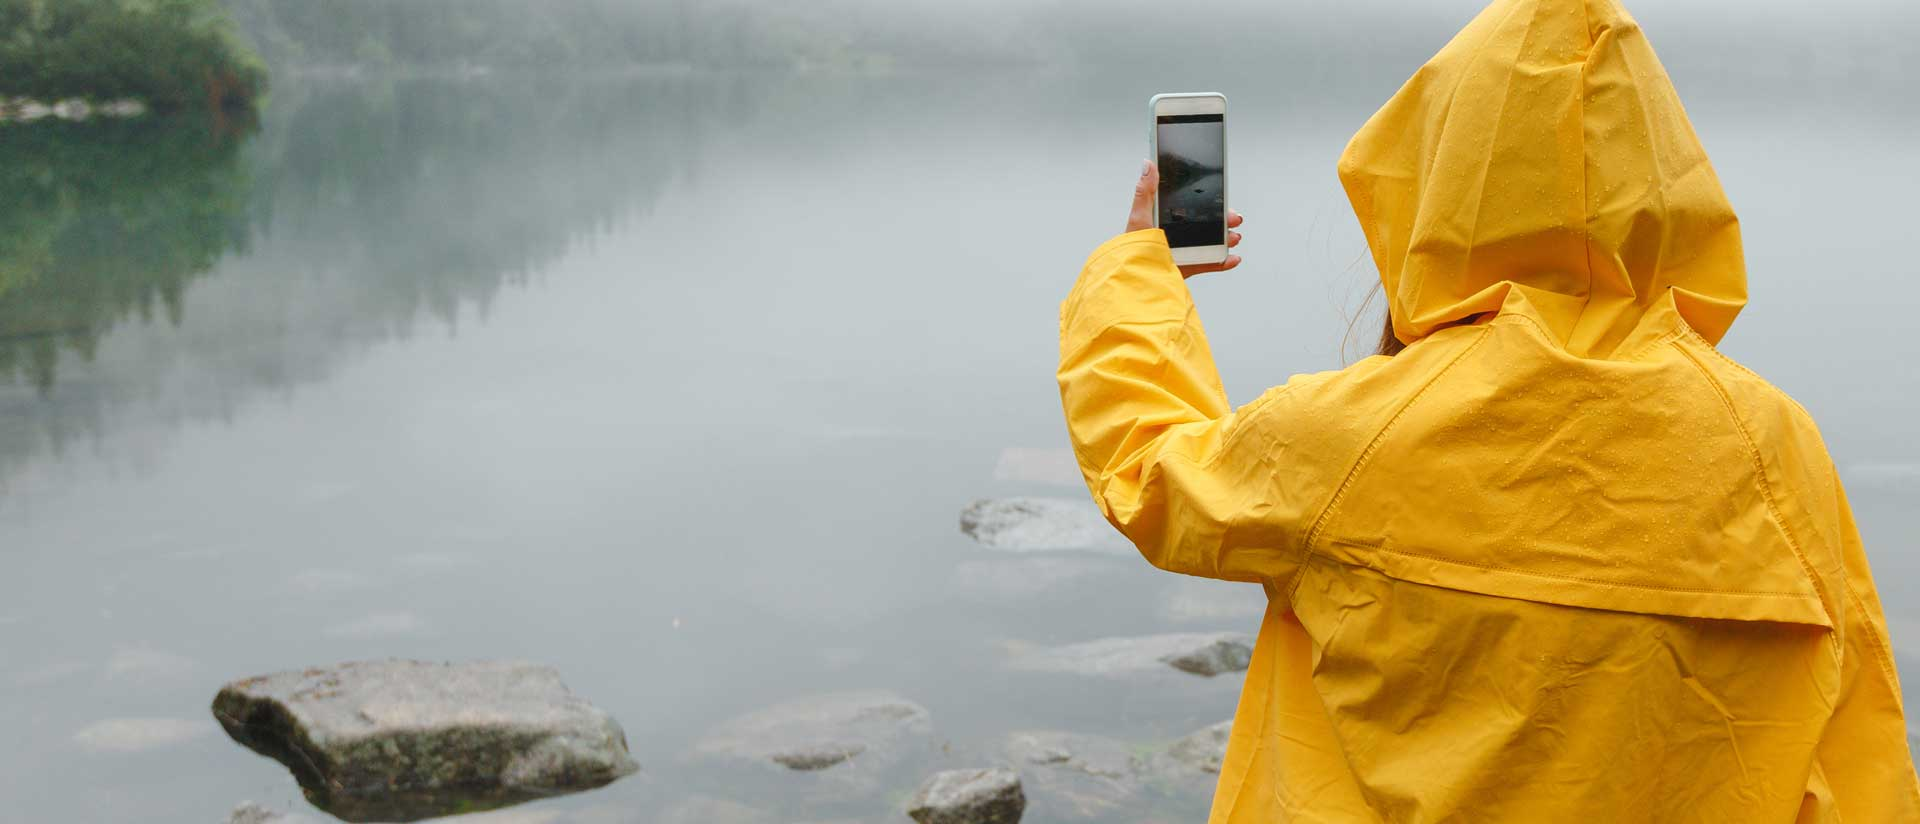 person in raincoat taking a photo with mobile phone